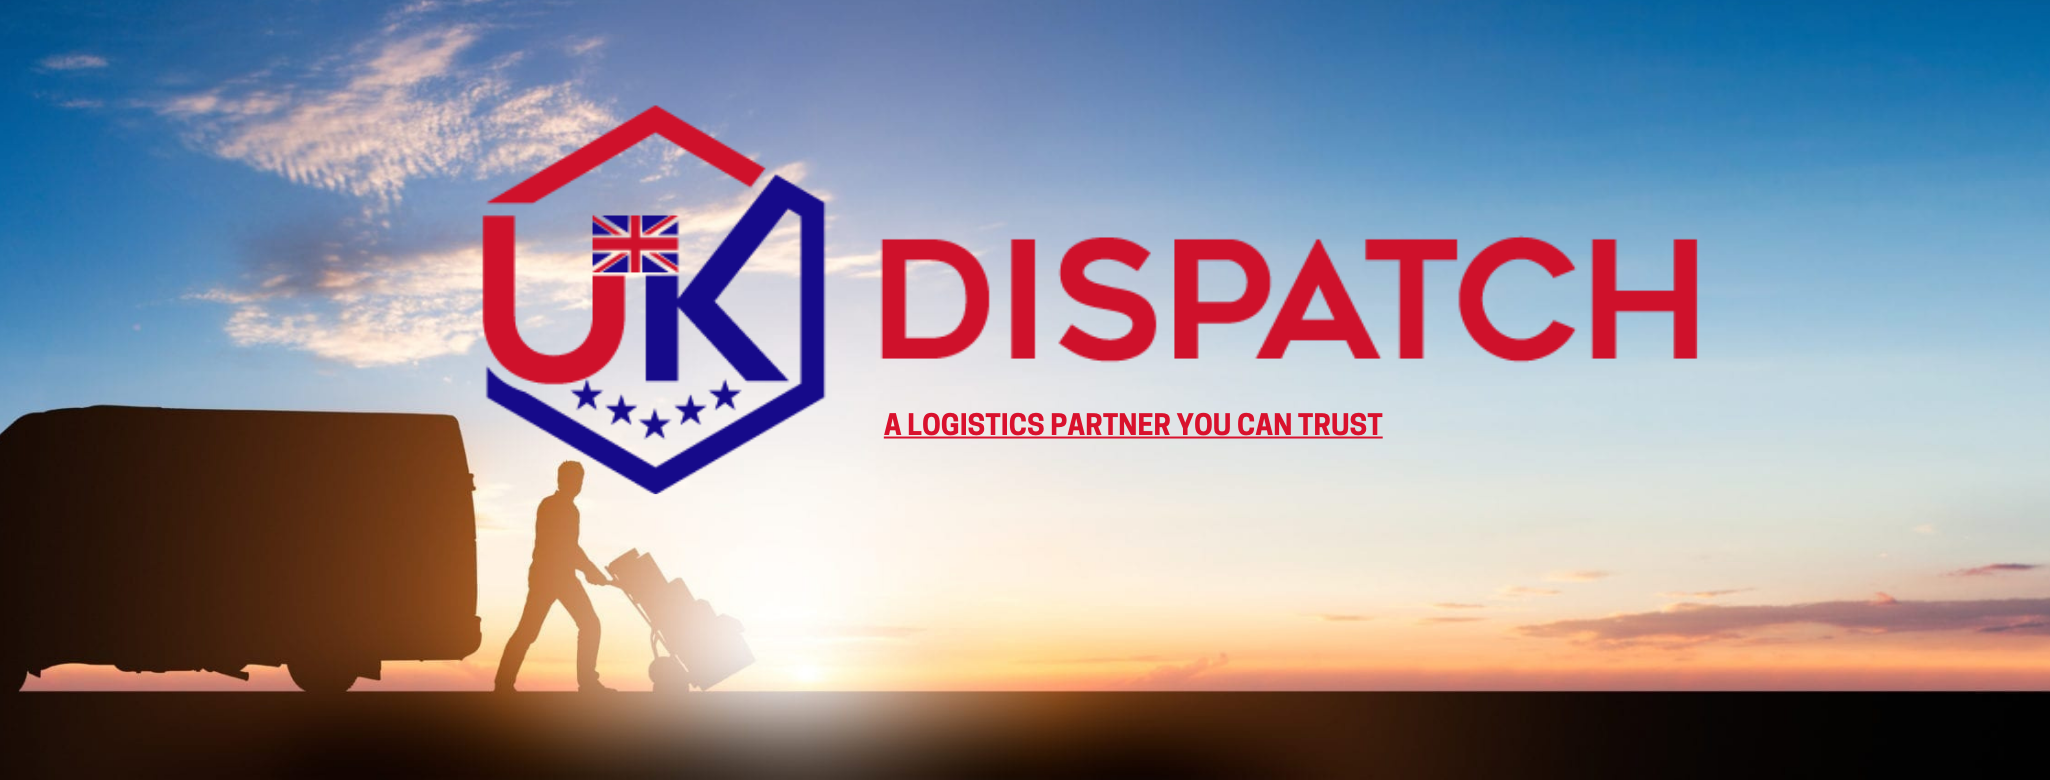 A Leading UK Logistics Company Provides Quick and Safe Deliveries Amidst Tough Times